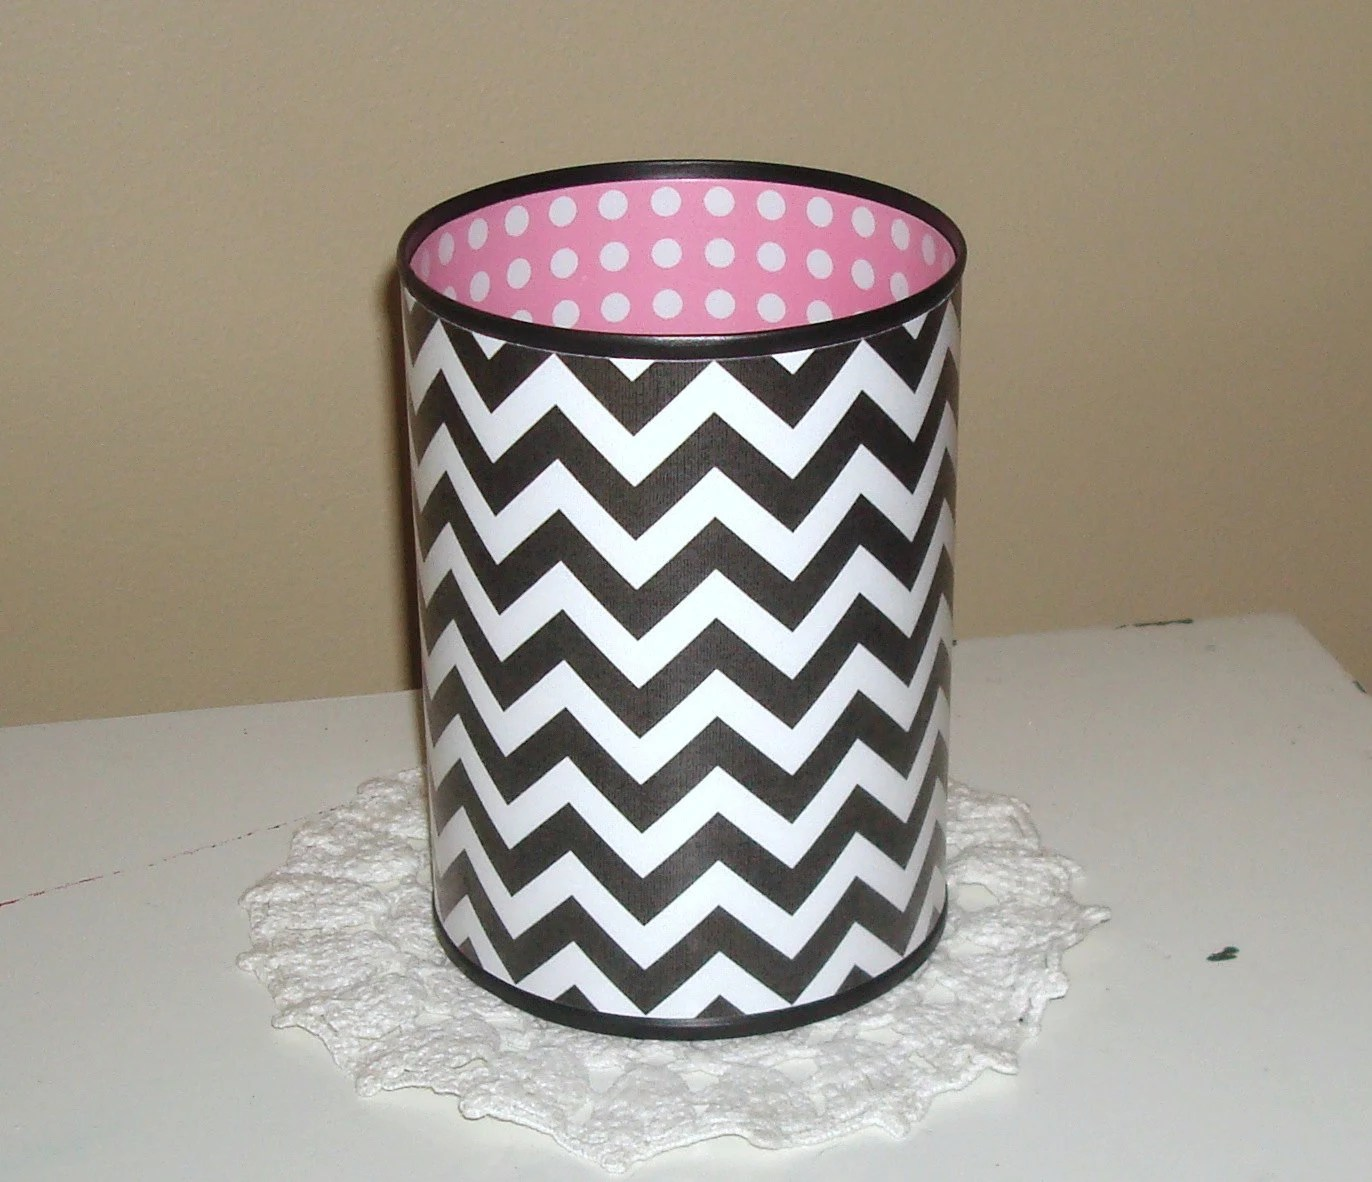 Pencil Holder Pink Black Pencil Cup Cute Desk Accessories